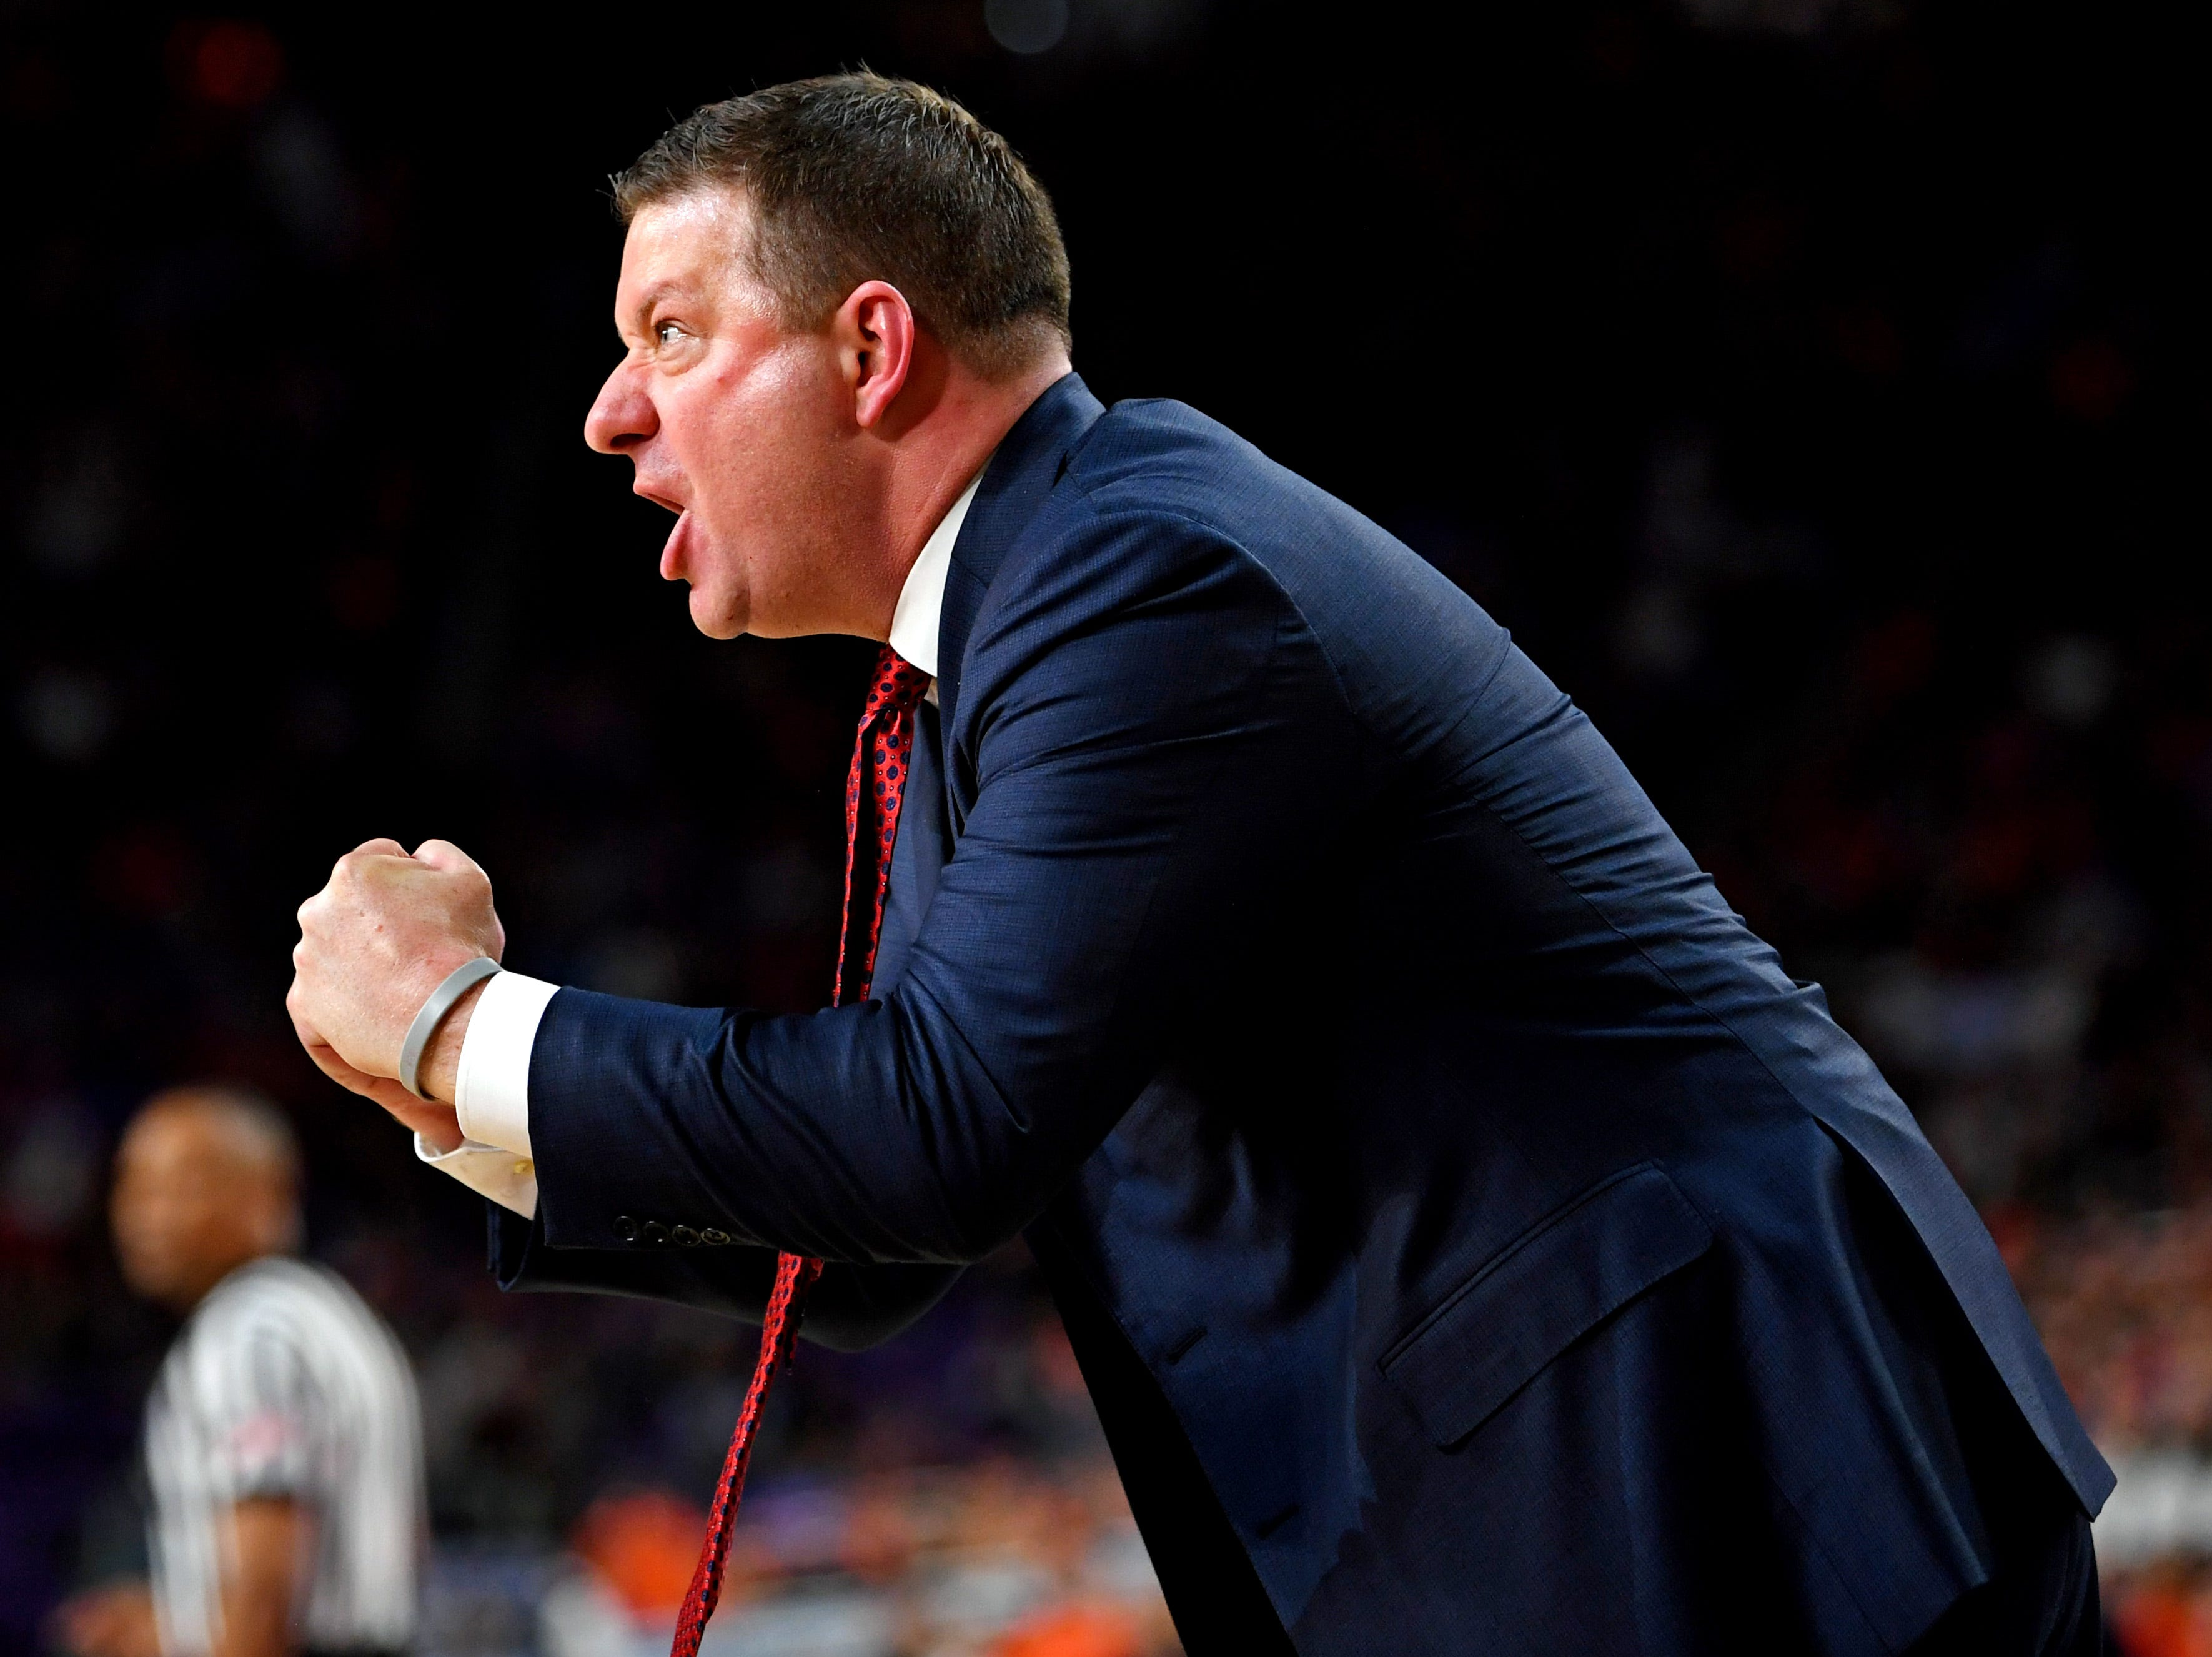 Apr 8, 2019; Minneapolis, MN, USA; Texas Tech Red Raiders head coach Chris Beard reacts during the first half against the Virginia Cavaliers in the championship game of the 2019 men's Final Four at US Bank Stadium. Mandatory Credit: Bob Donnan-USA TODAY Sports